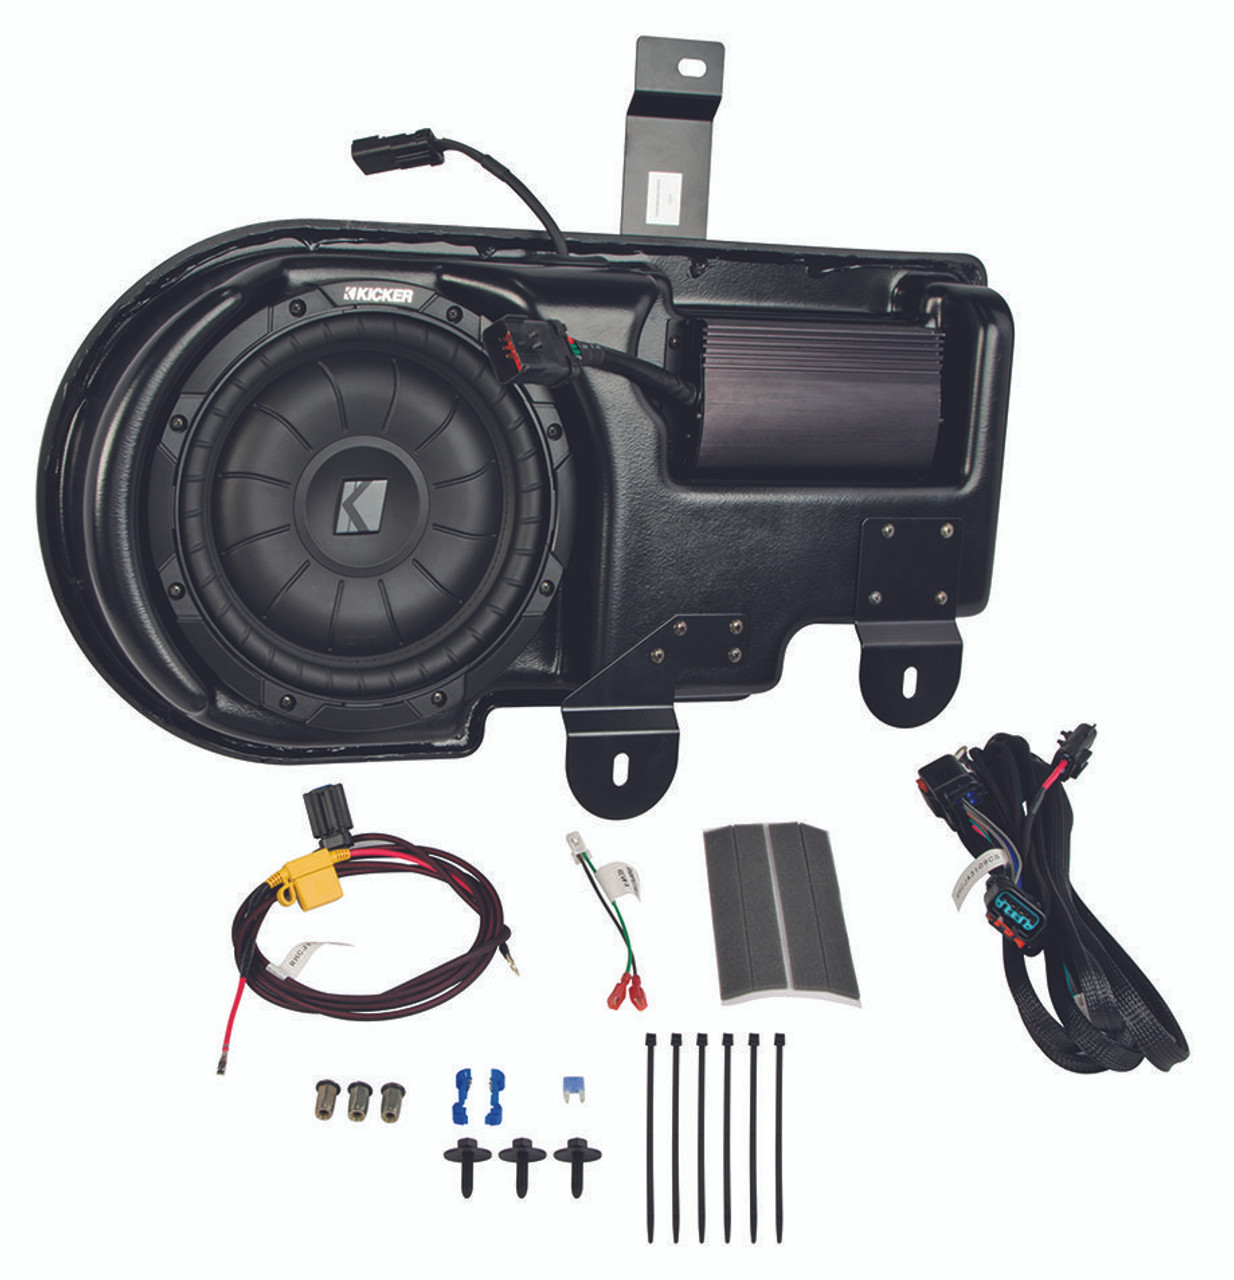 KICKER SubStage Powered Subwoofer Upgrade Kit for 2009-2014 Ford F150 on